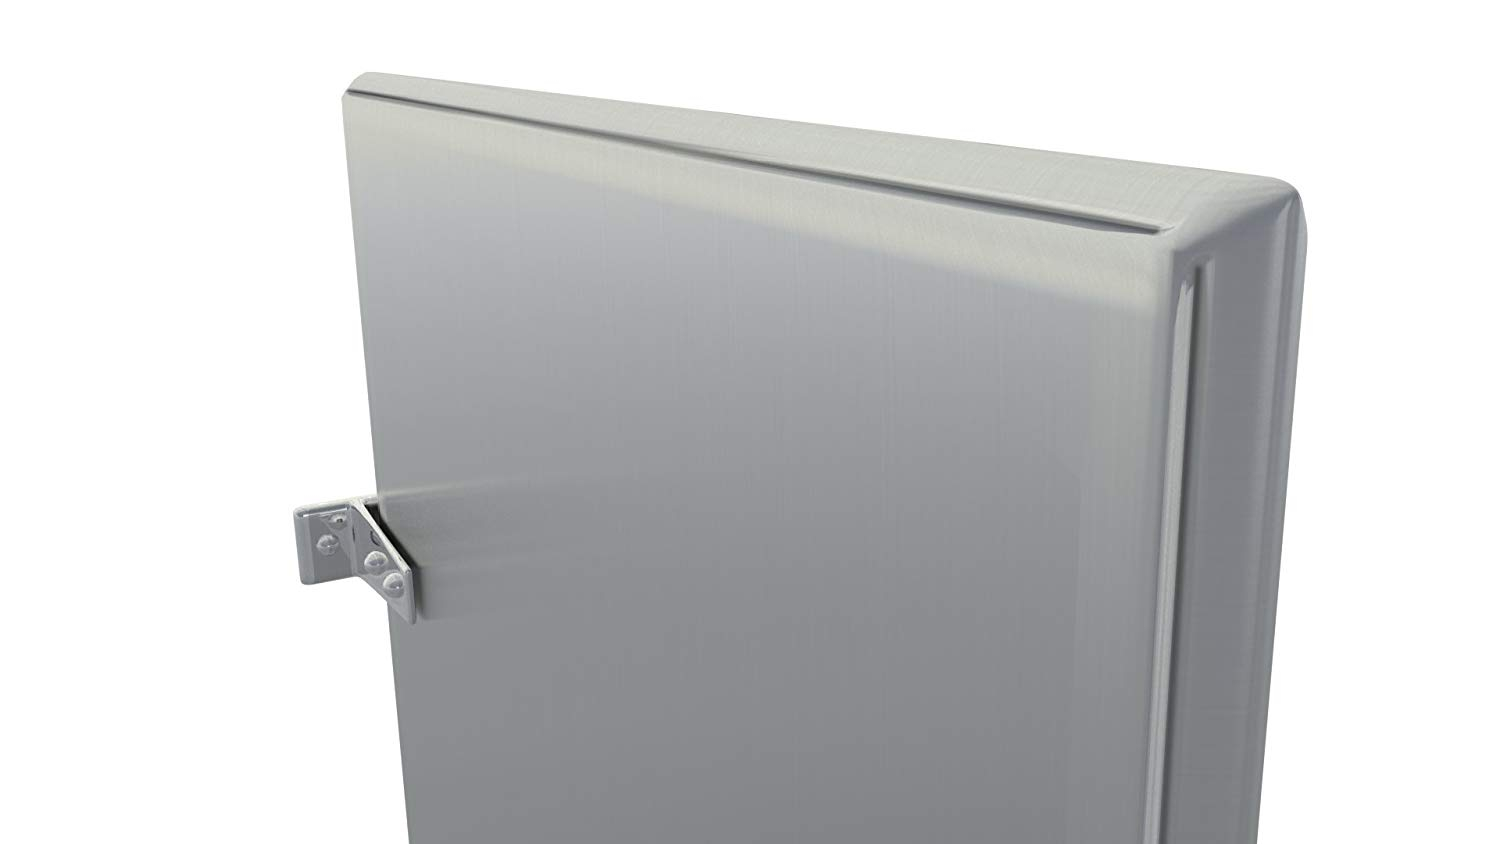 Stainless Steel Urinal Stall Partition Divider Screen With Wall Hung Mounting Brackets Kit (Stainless Steel)